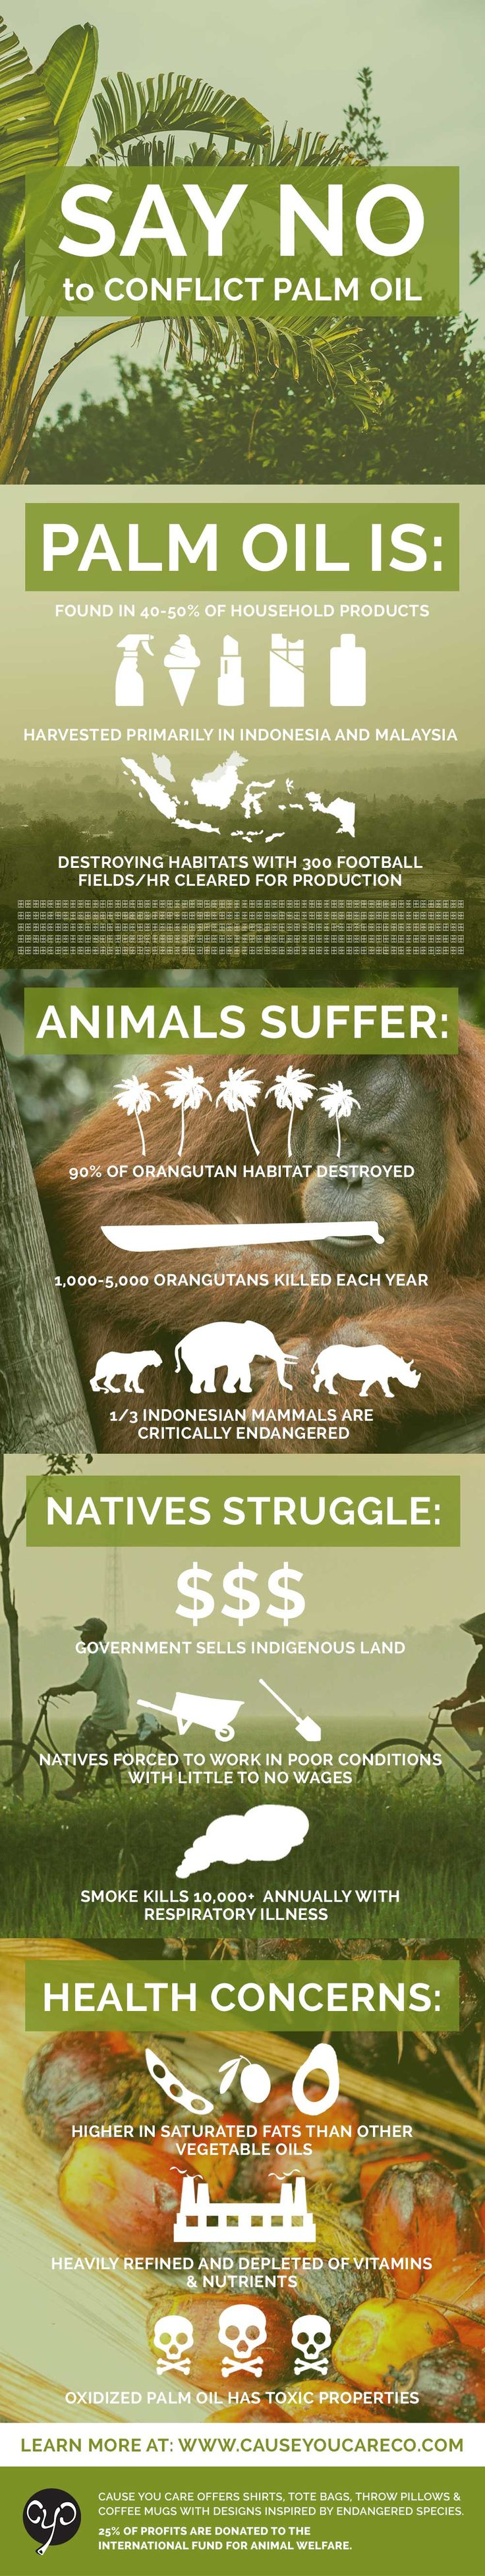 Did you know palm oil is responsible for severe habitat destruction, climate change, animal cruelty and indigenous rights abuses? Here's how to avoid it! #infographic